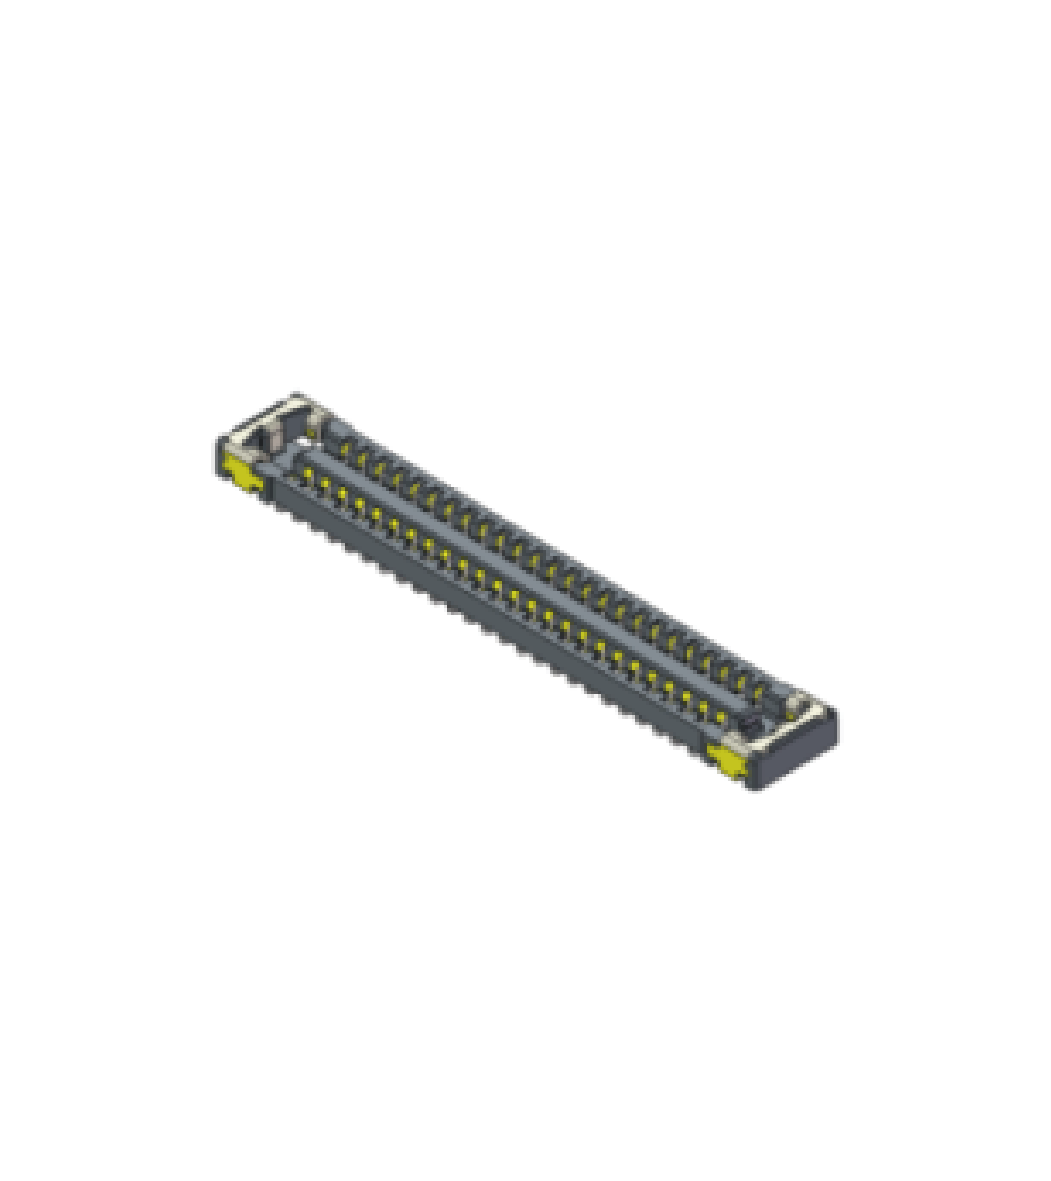 BTB Connector-BS003